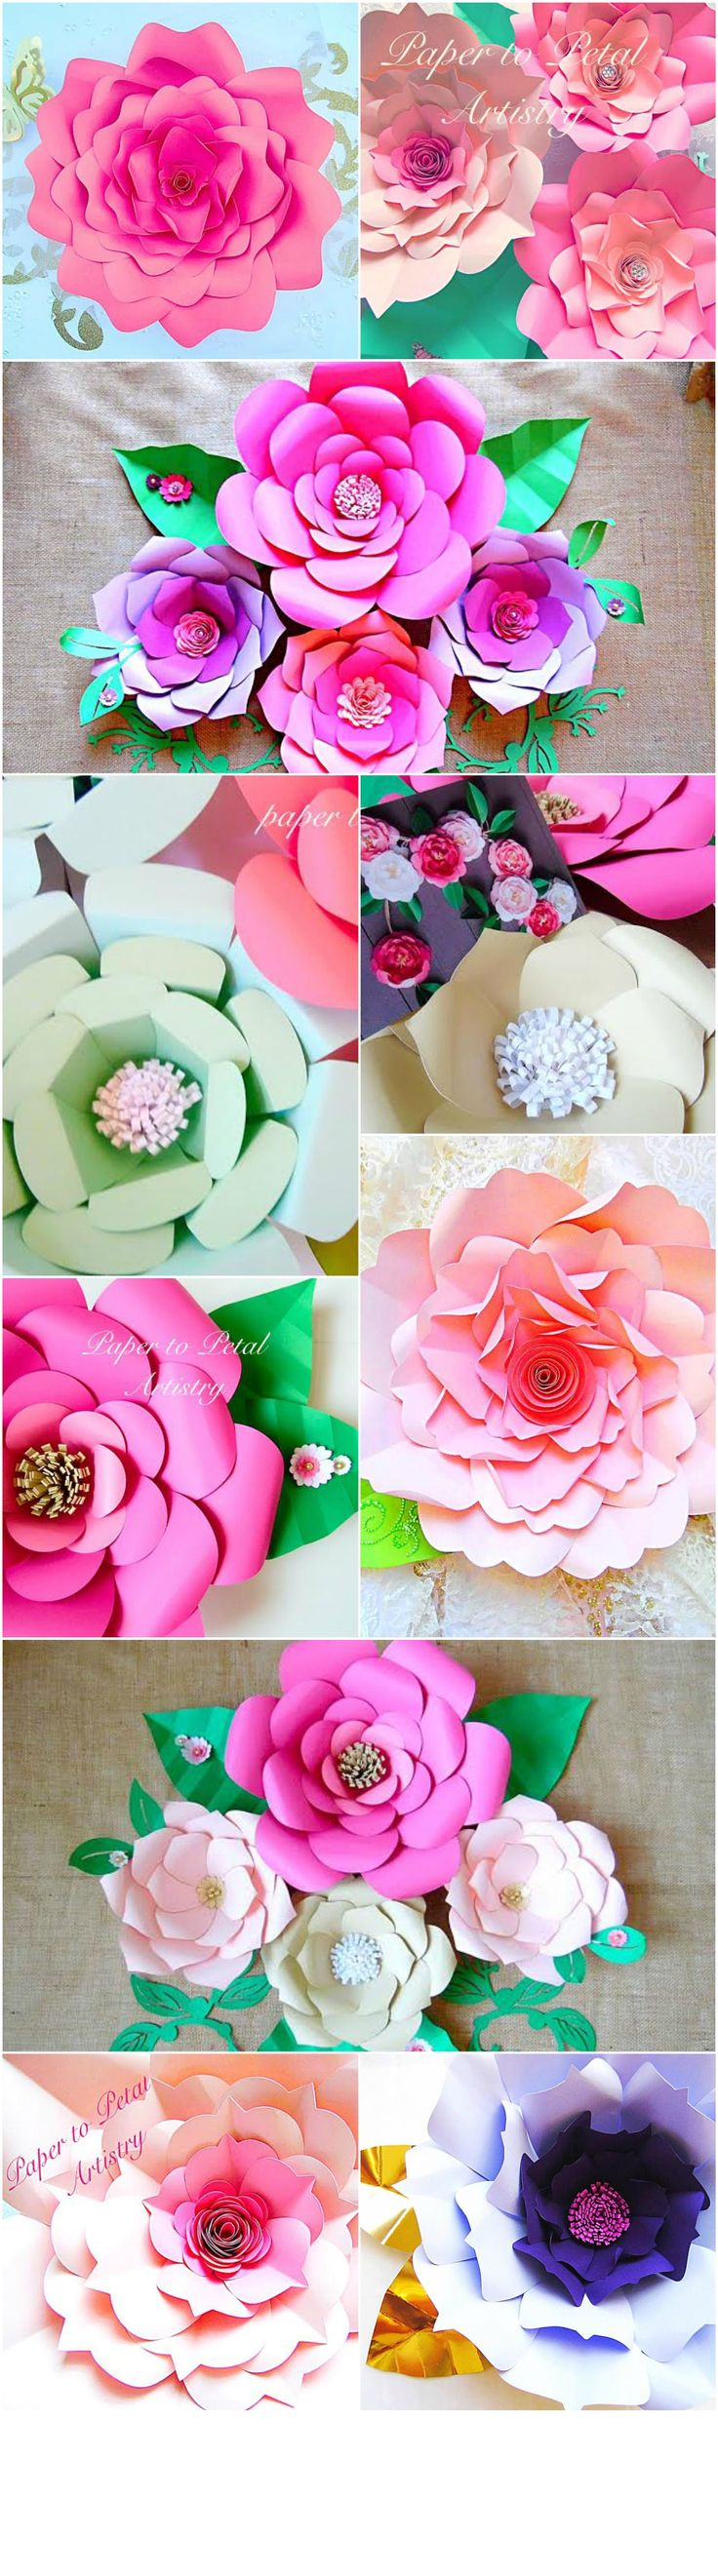 Want to make these beautiful paper flowers for your wedding, baby shower, child's birthday party or any special occasion? It's easy and you can instantly download the templates here!